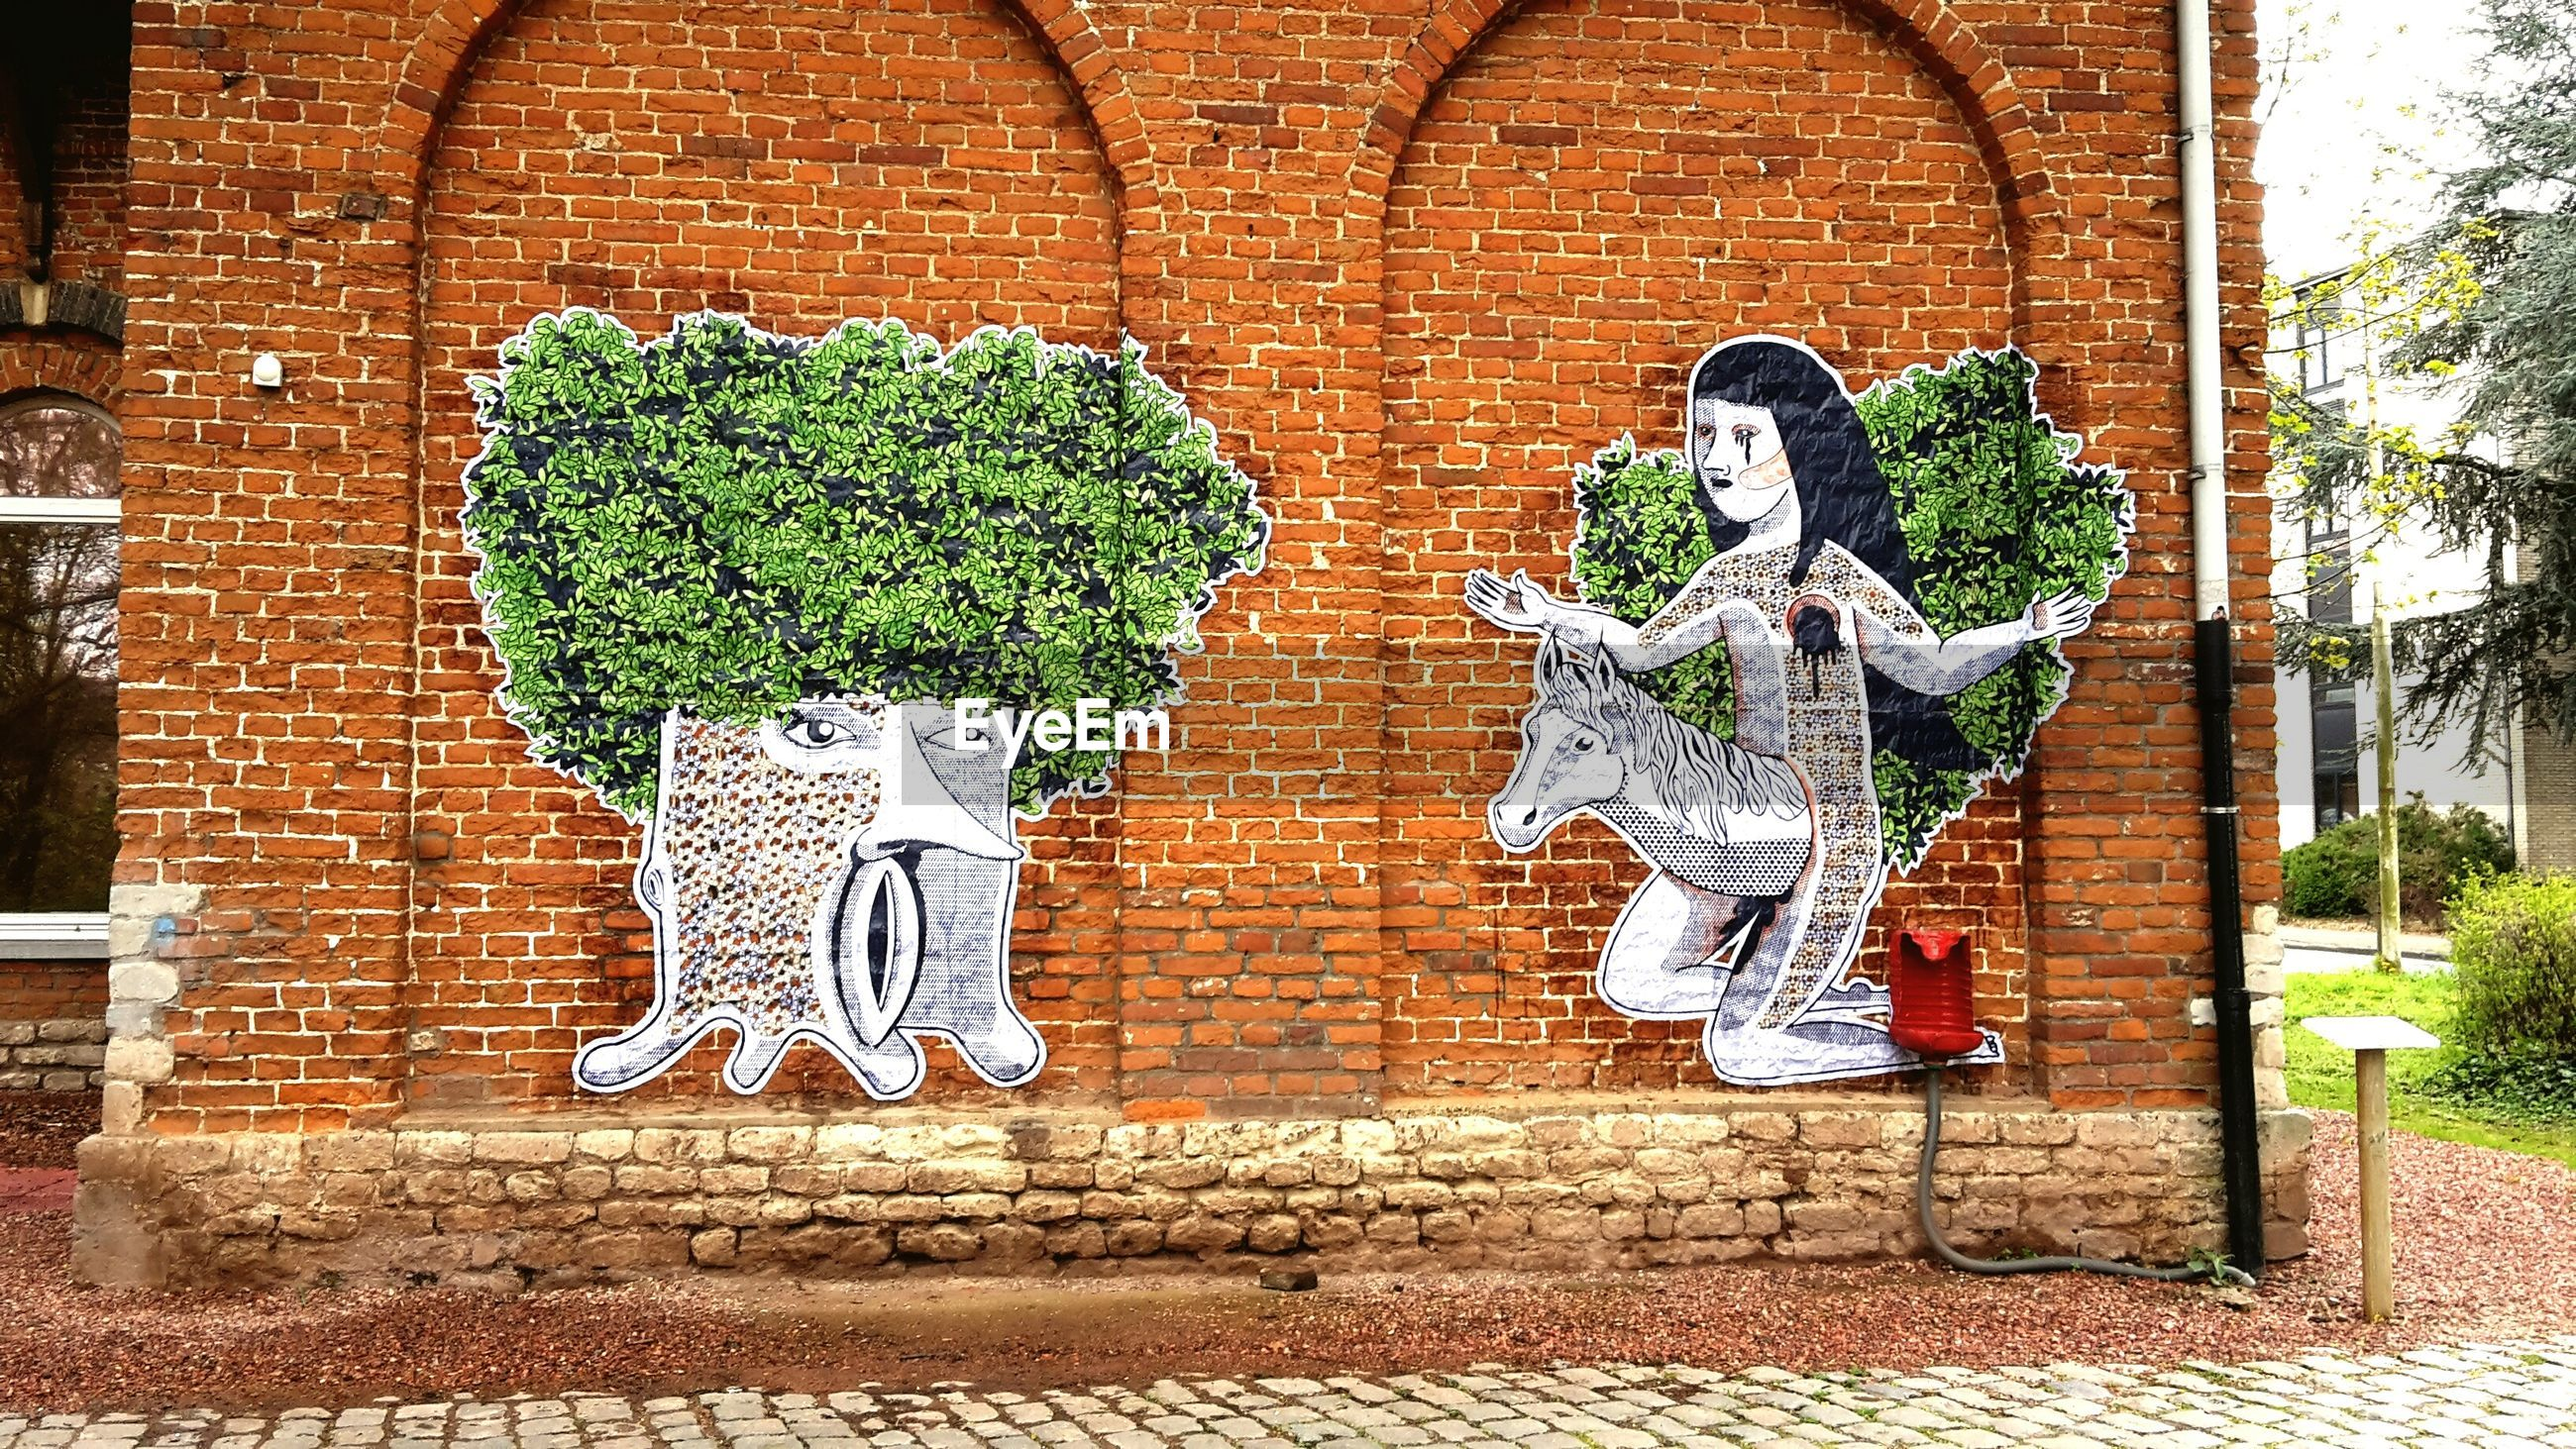 art, art and craft, creativity, wall - building feature, built structure, green color, human representation, plant, wall, brick wall, architecture, growth, graffiti, leaf, building exterior, no people, animal representation, design, day